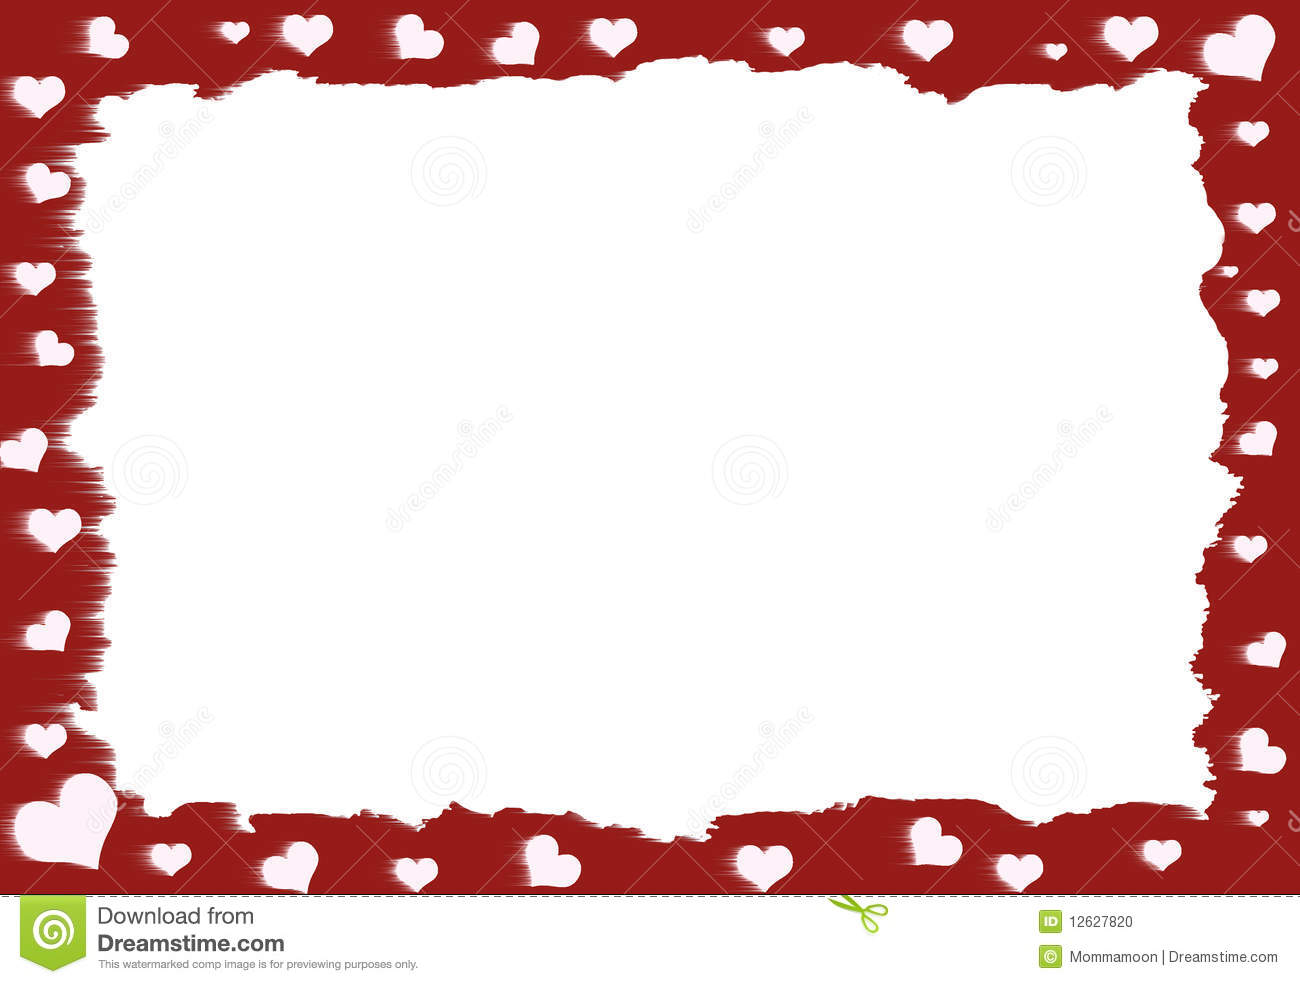 Red and white Heart Border with white area in the center for text.